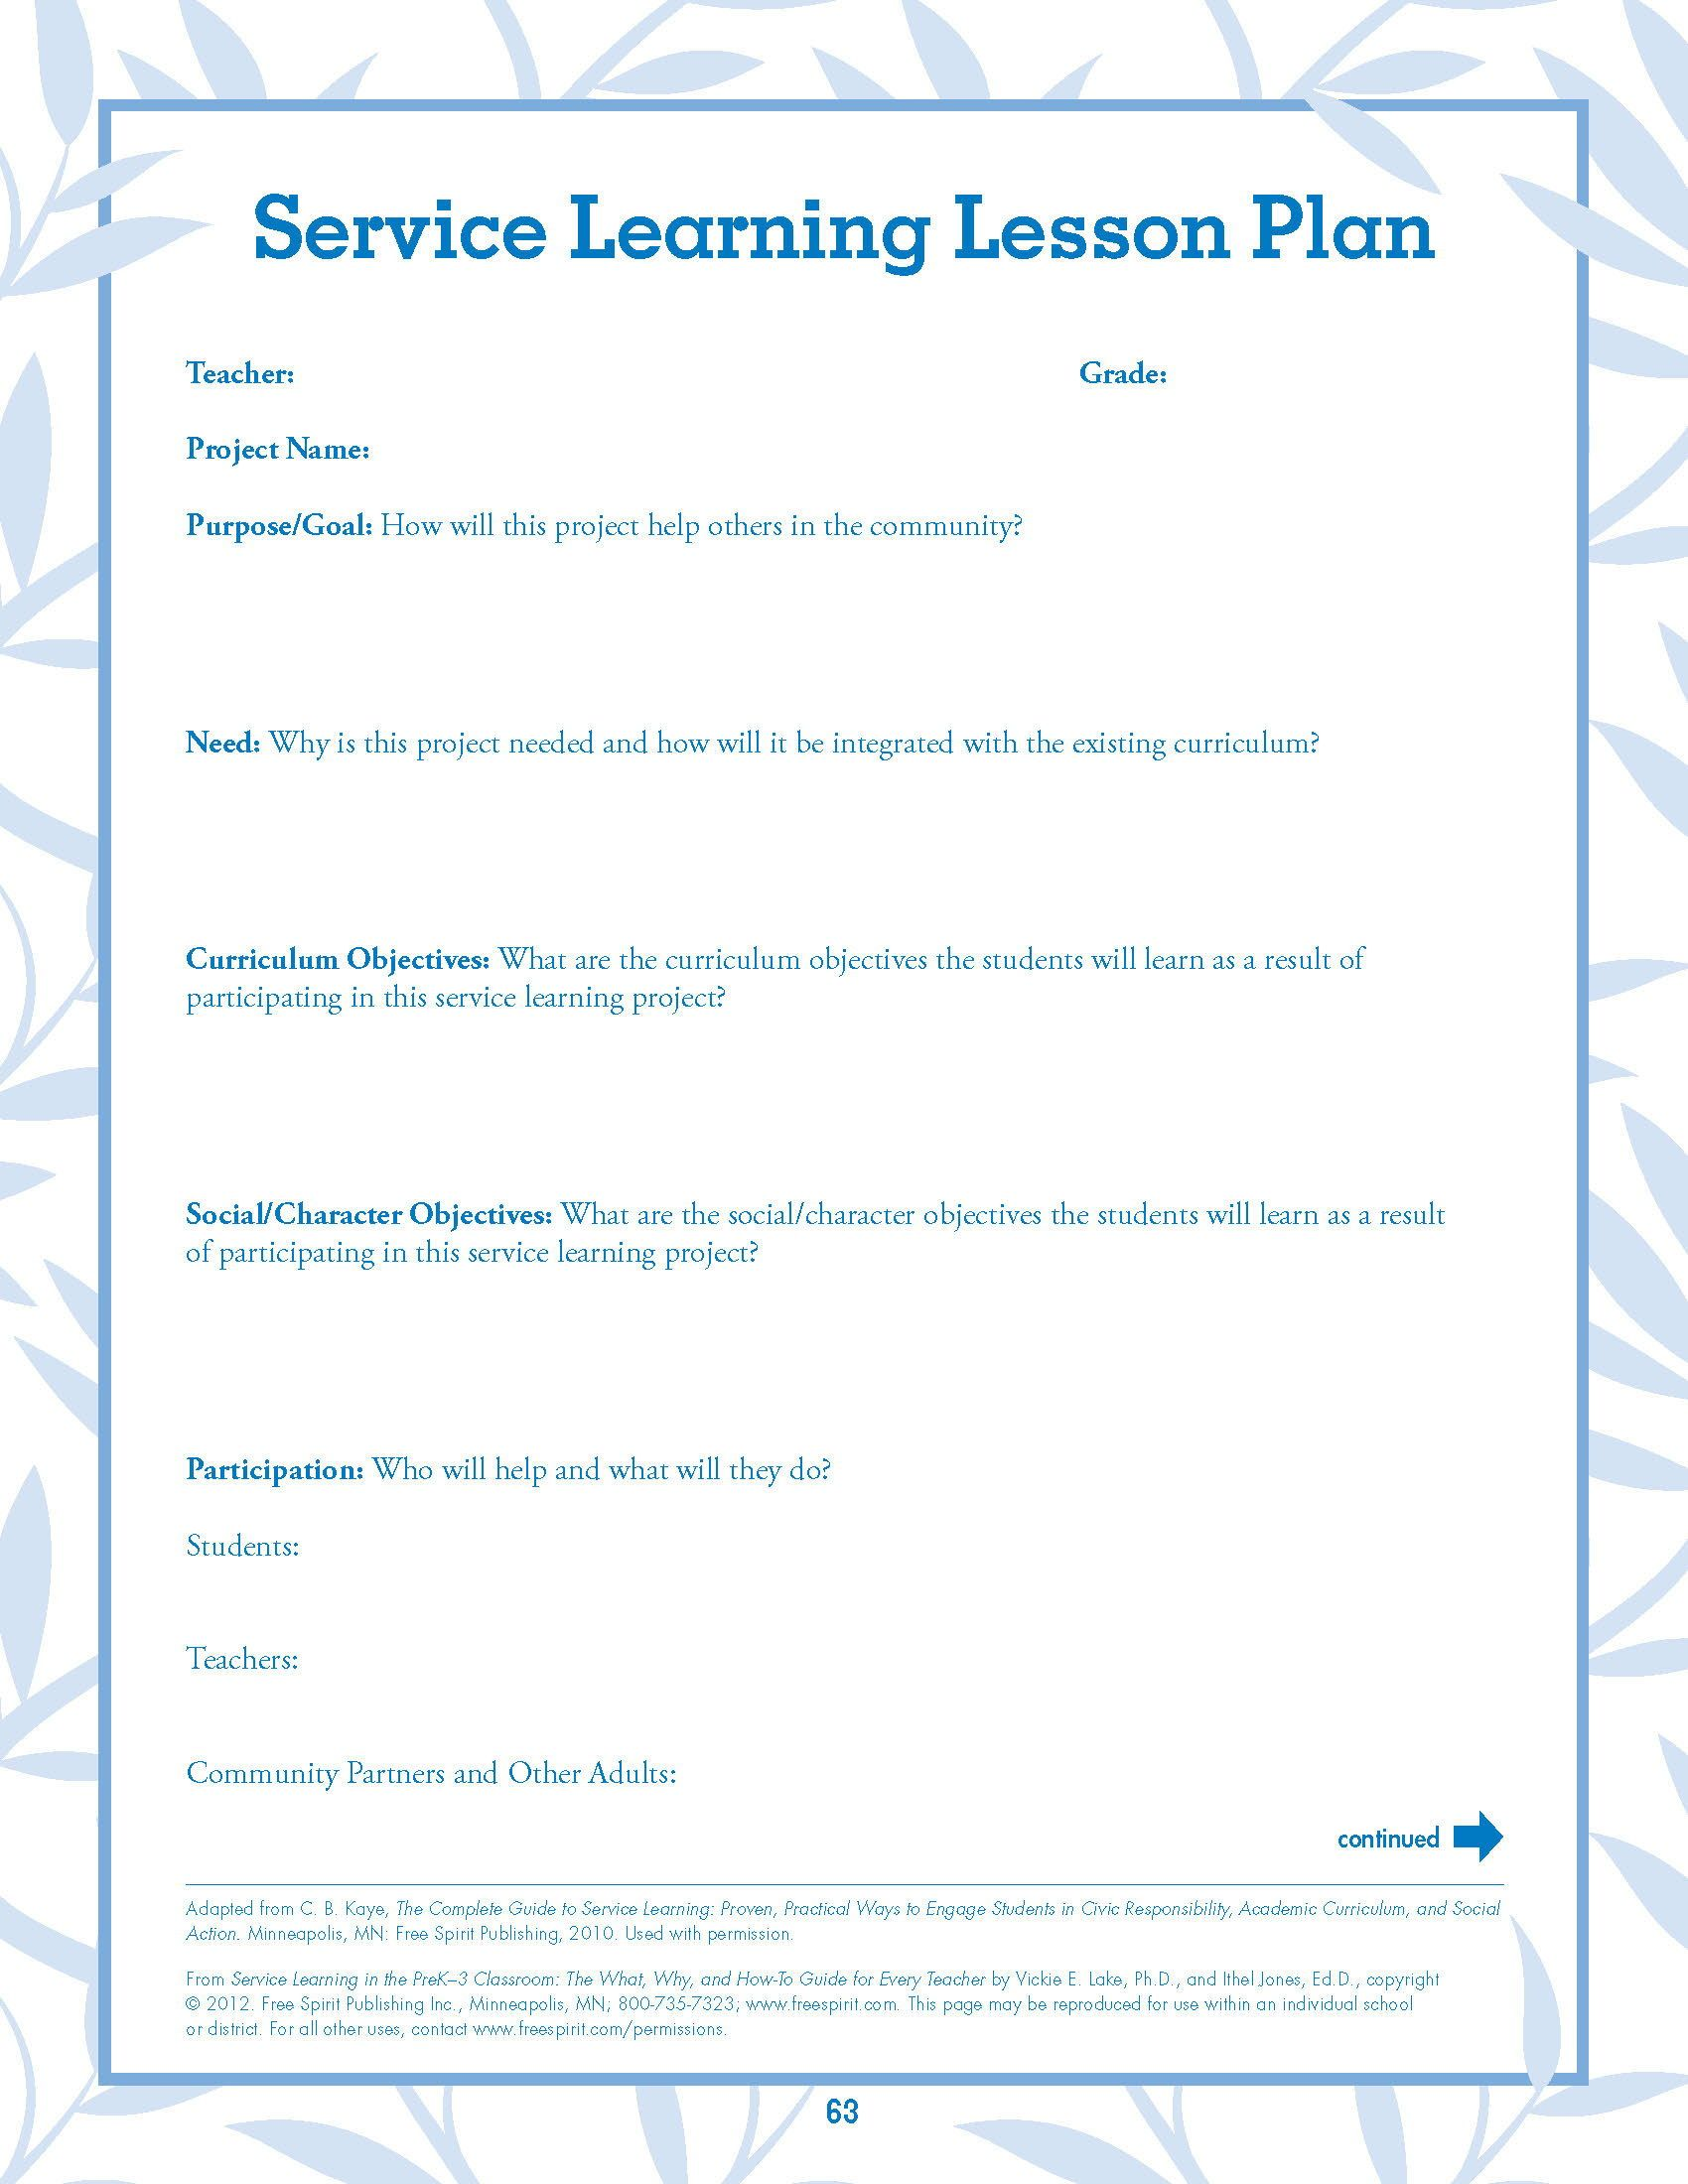 Free Worksheet Service Learning Lesson Plan From Service